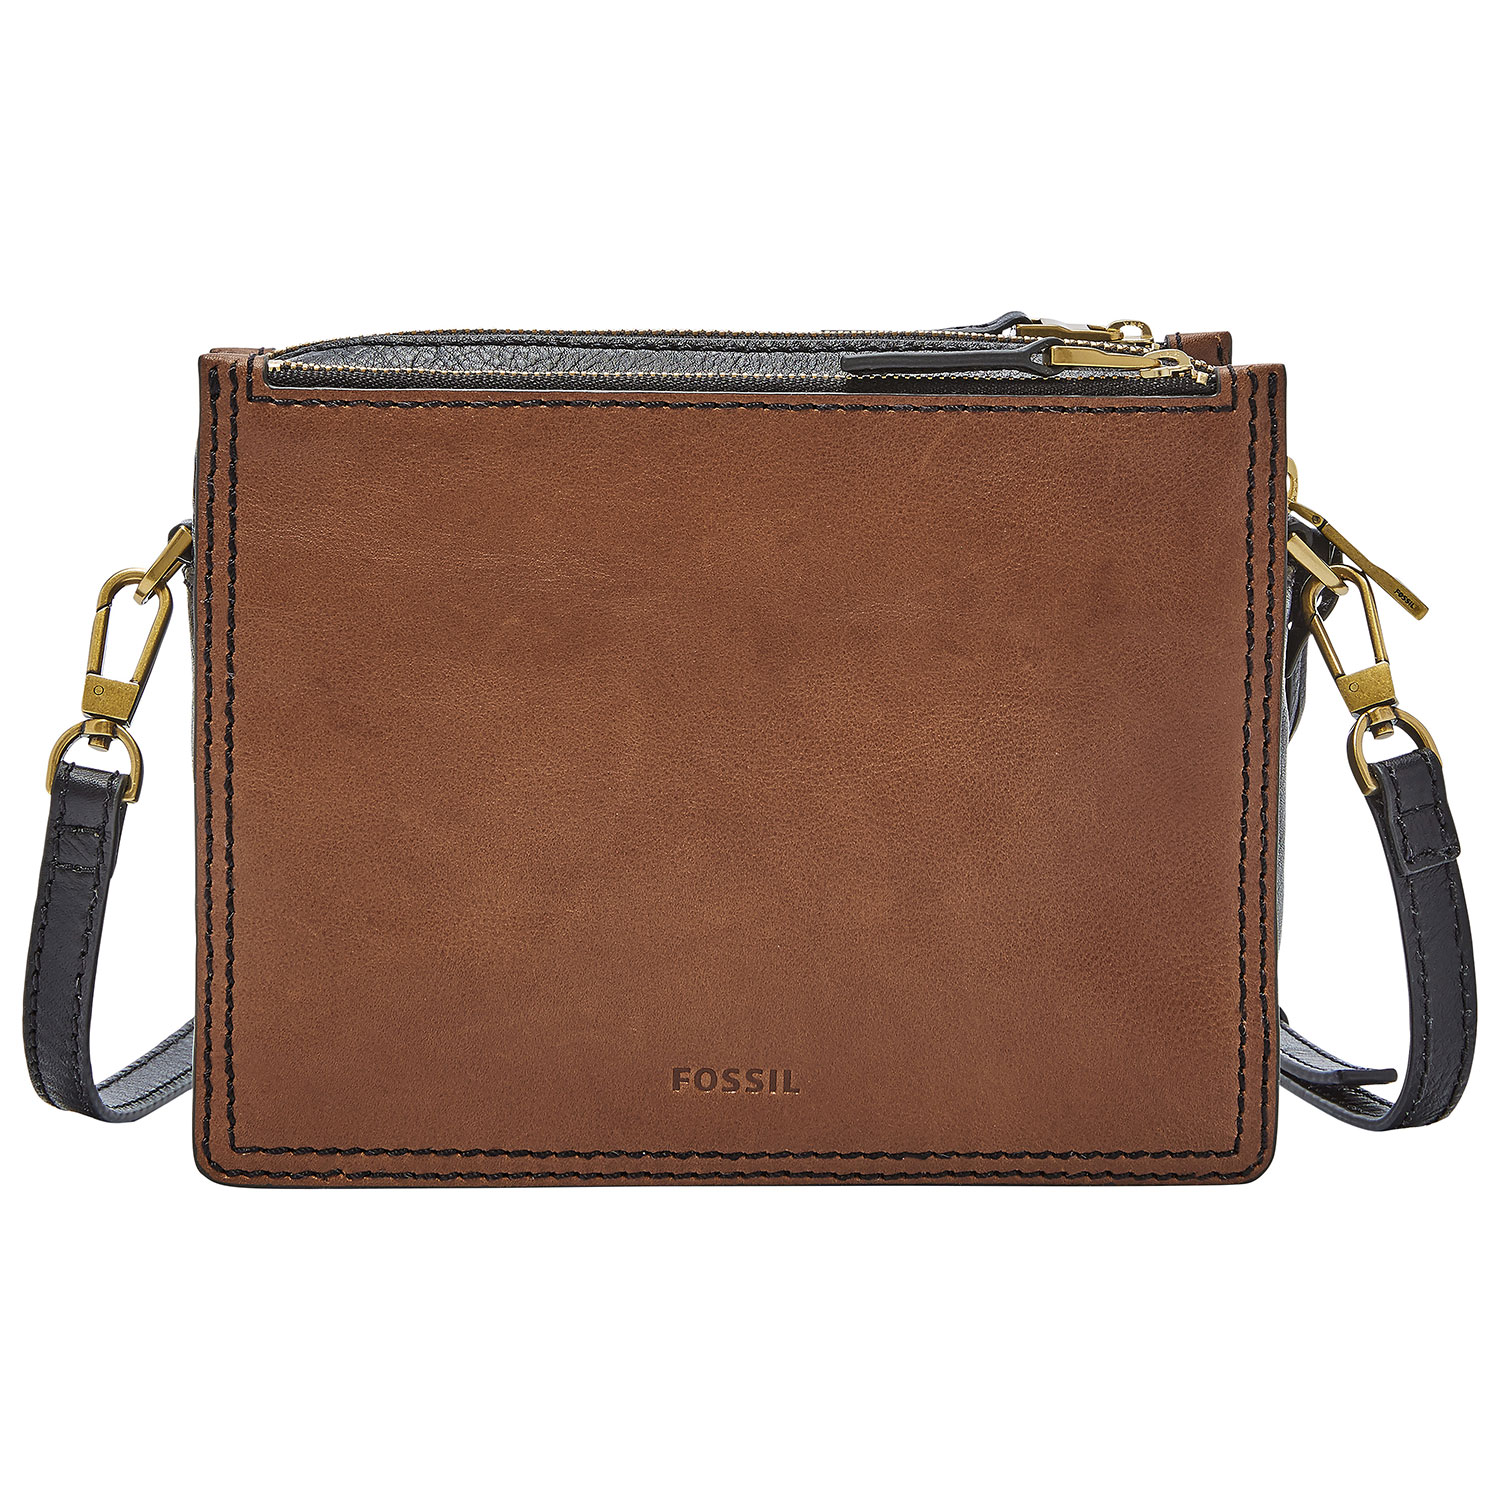 Fossil Campbell Leather Crossbody Bag - Brown   Crossbody Bags ... 5c1ae62ad8